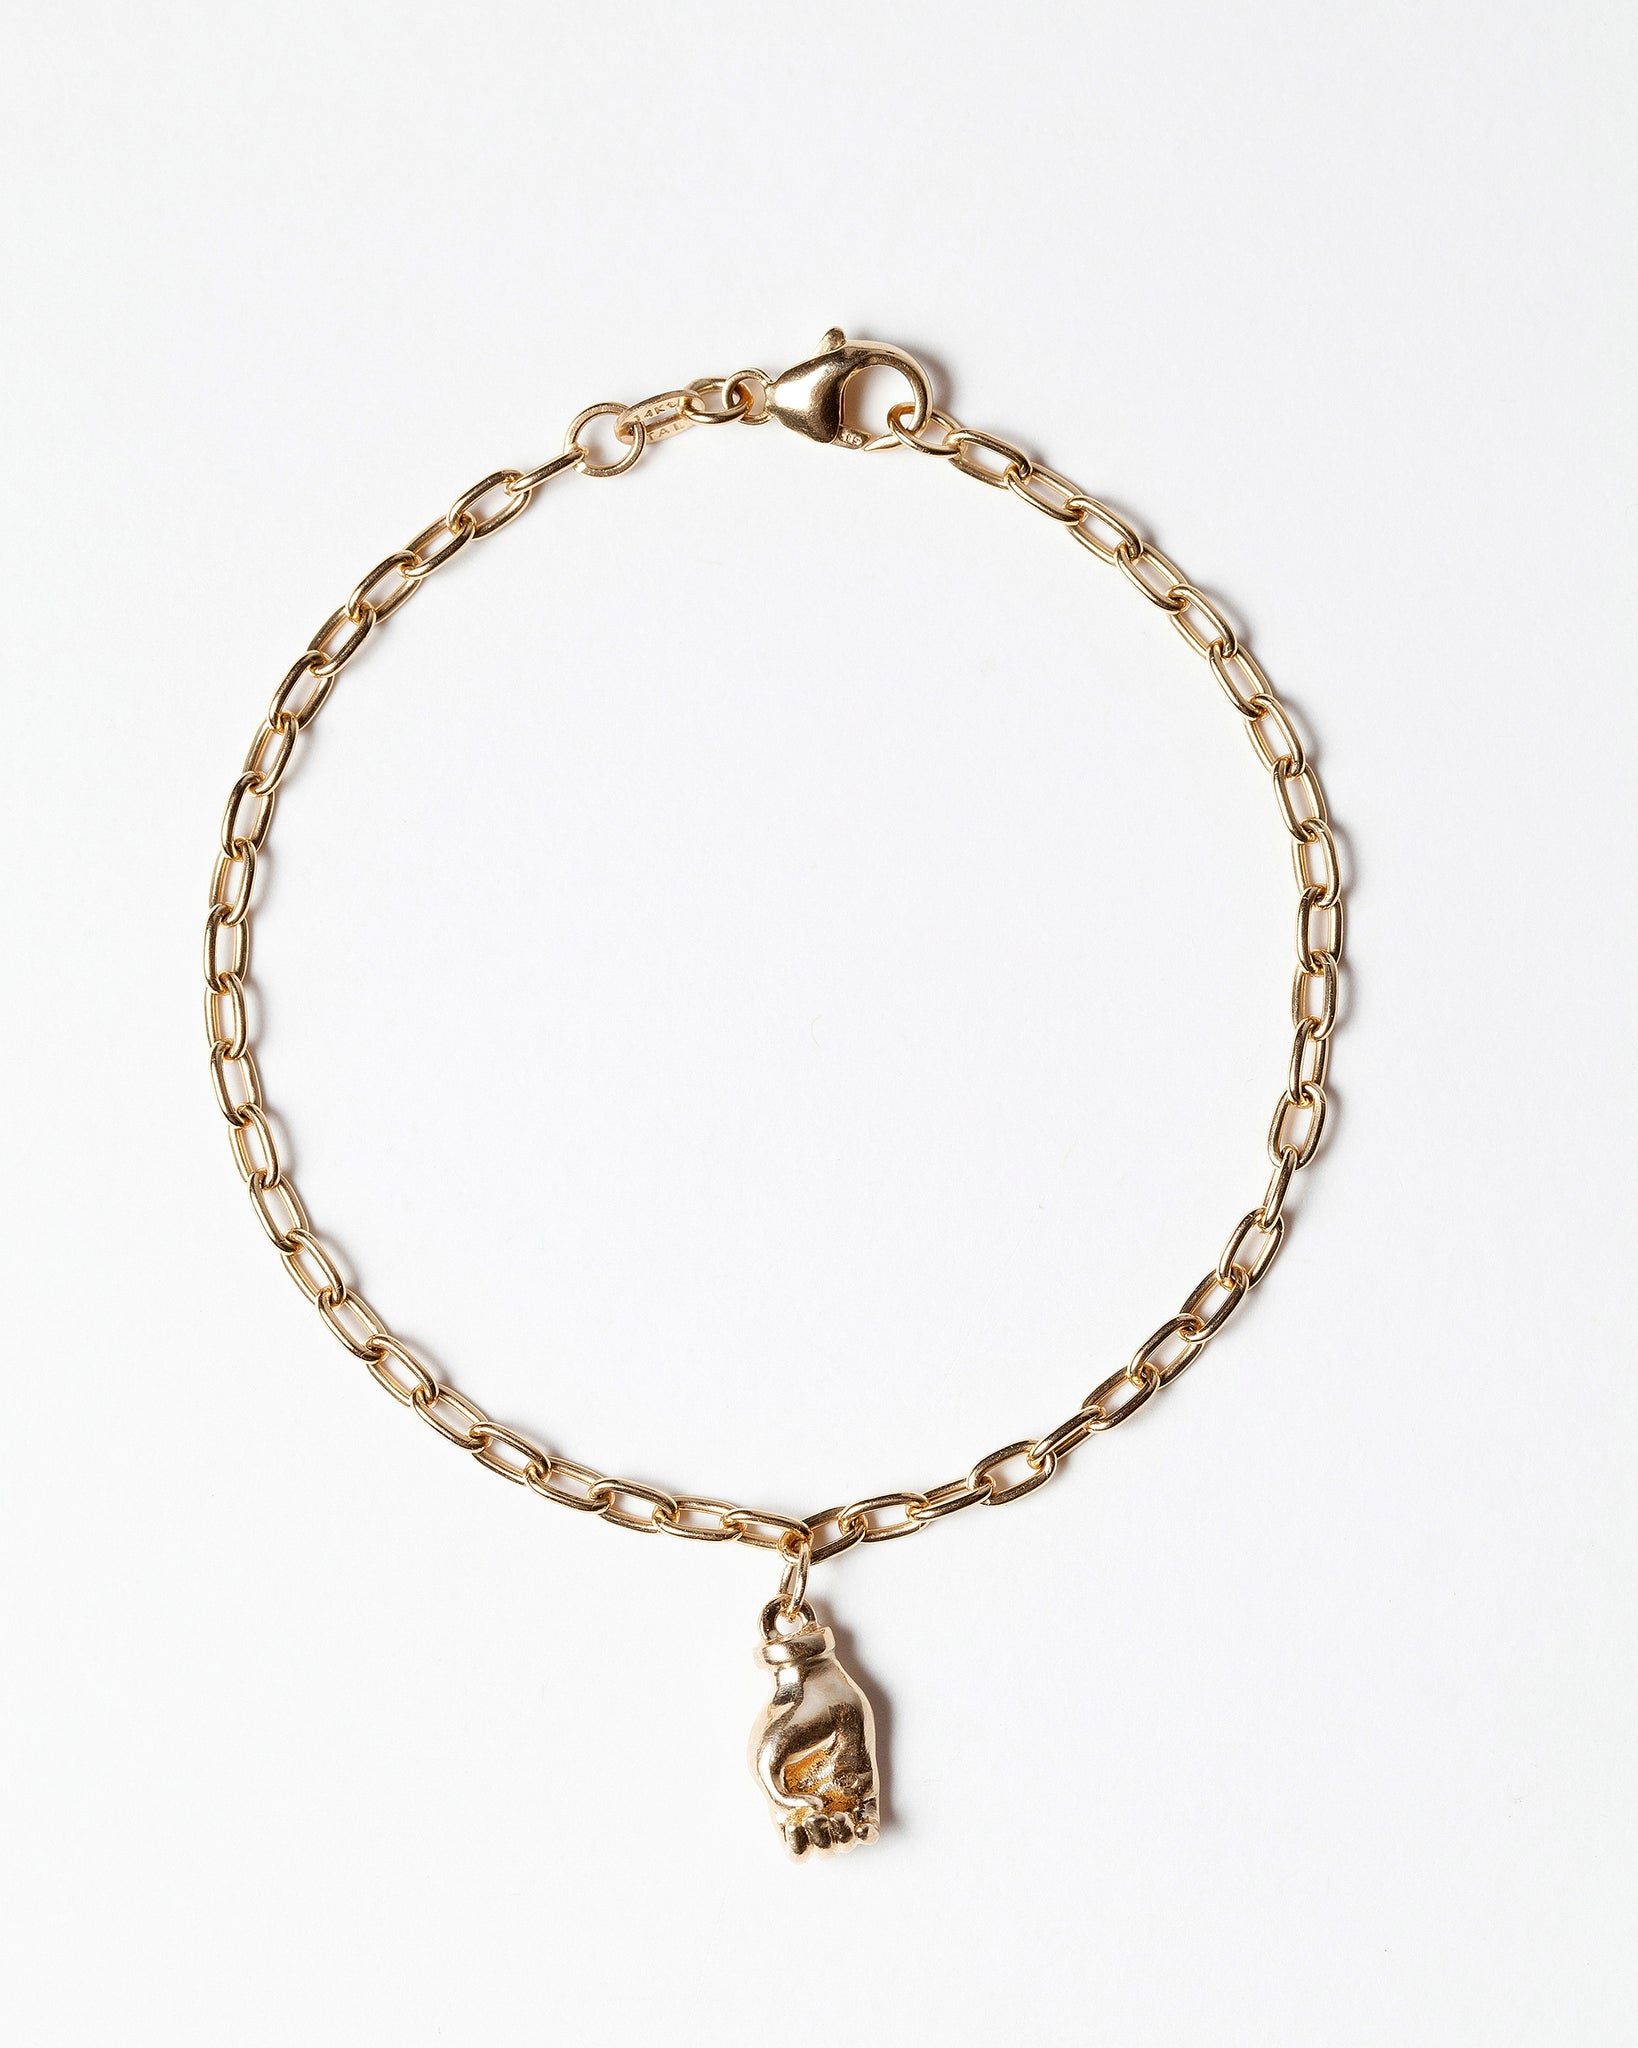 Sign Language Letter O Charm on Charm Bracelet